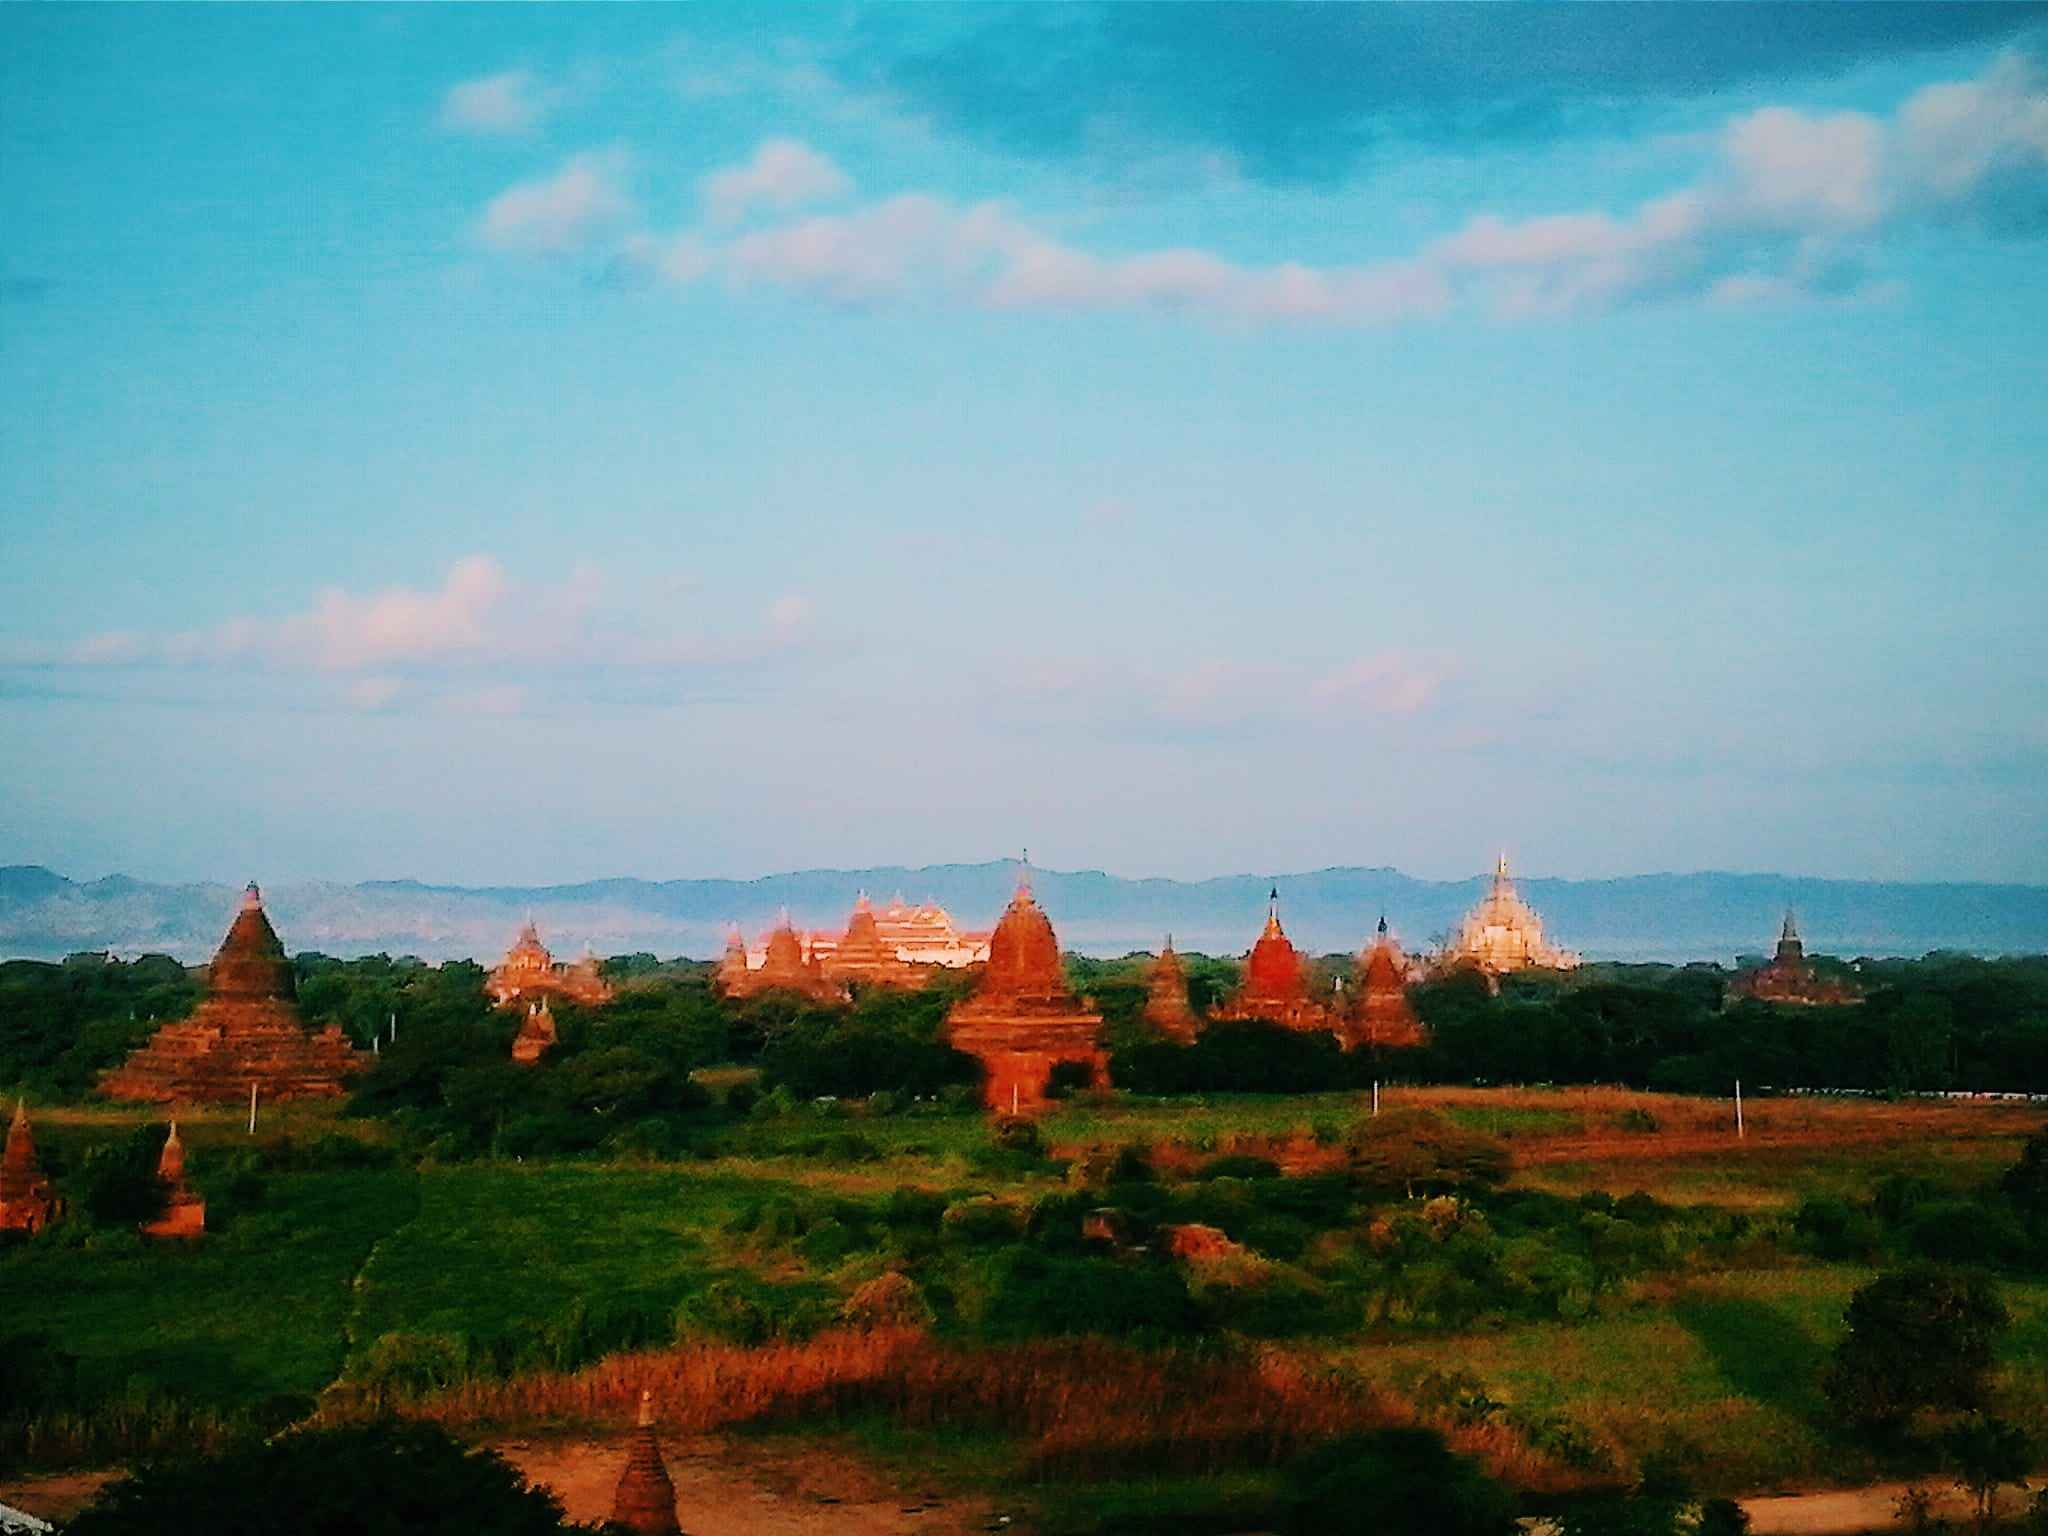 Sunrise Bagan. Travel Myanmar in a low budget